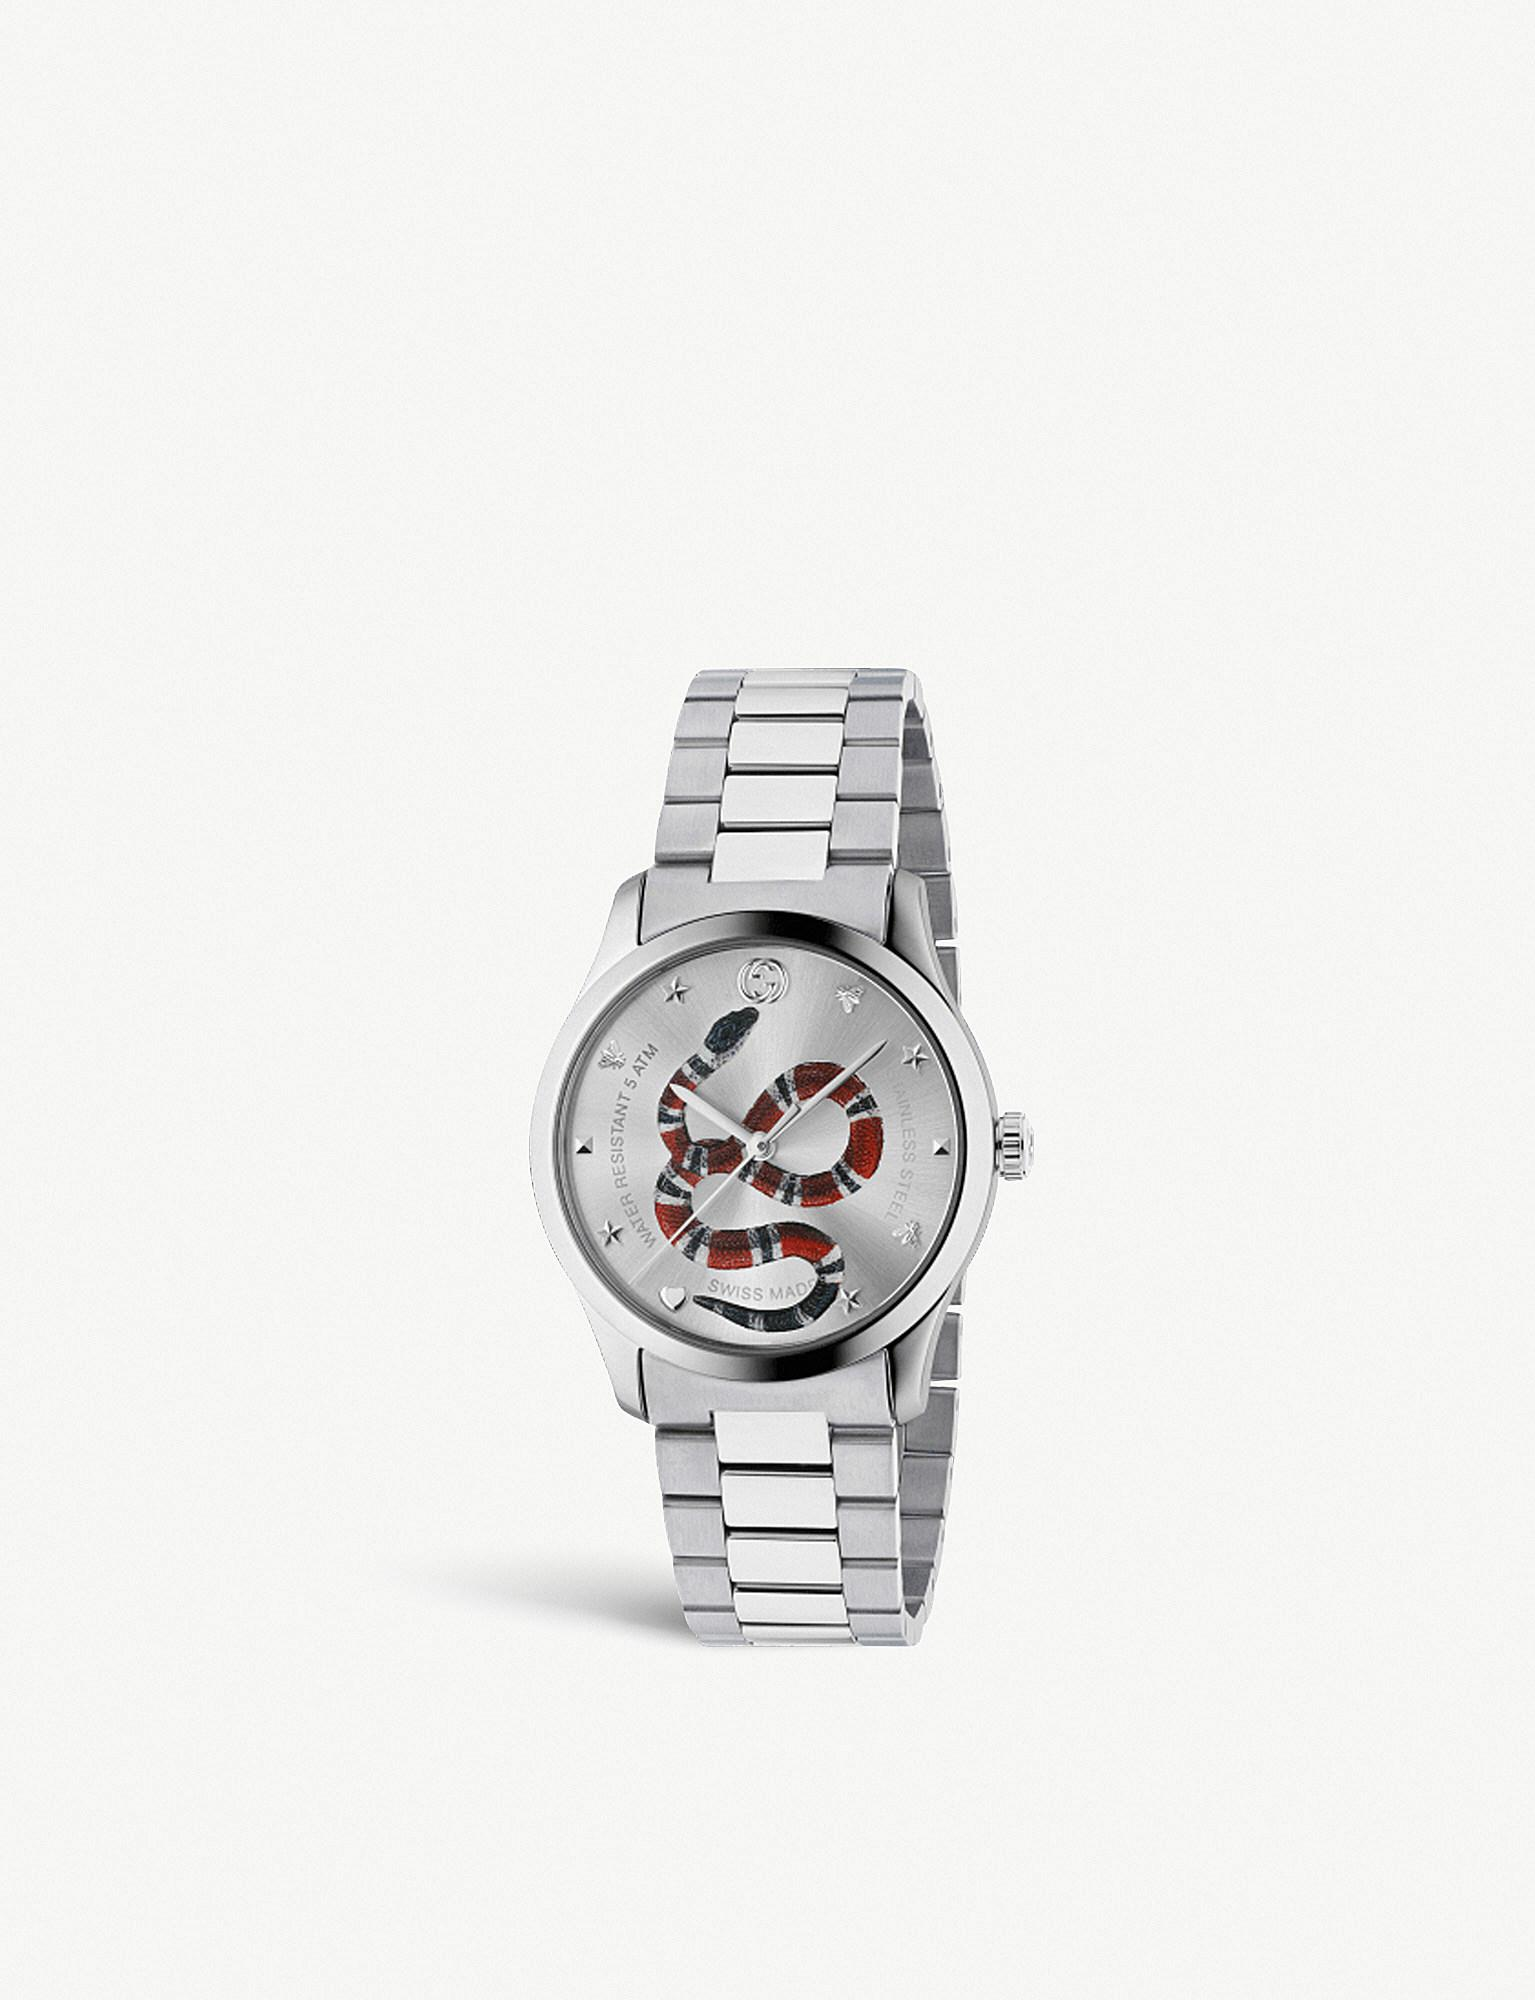 731deab34c2 Gucci Ya1264076 G-timeless Stainless Steel Bracelet Watch in ...